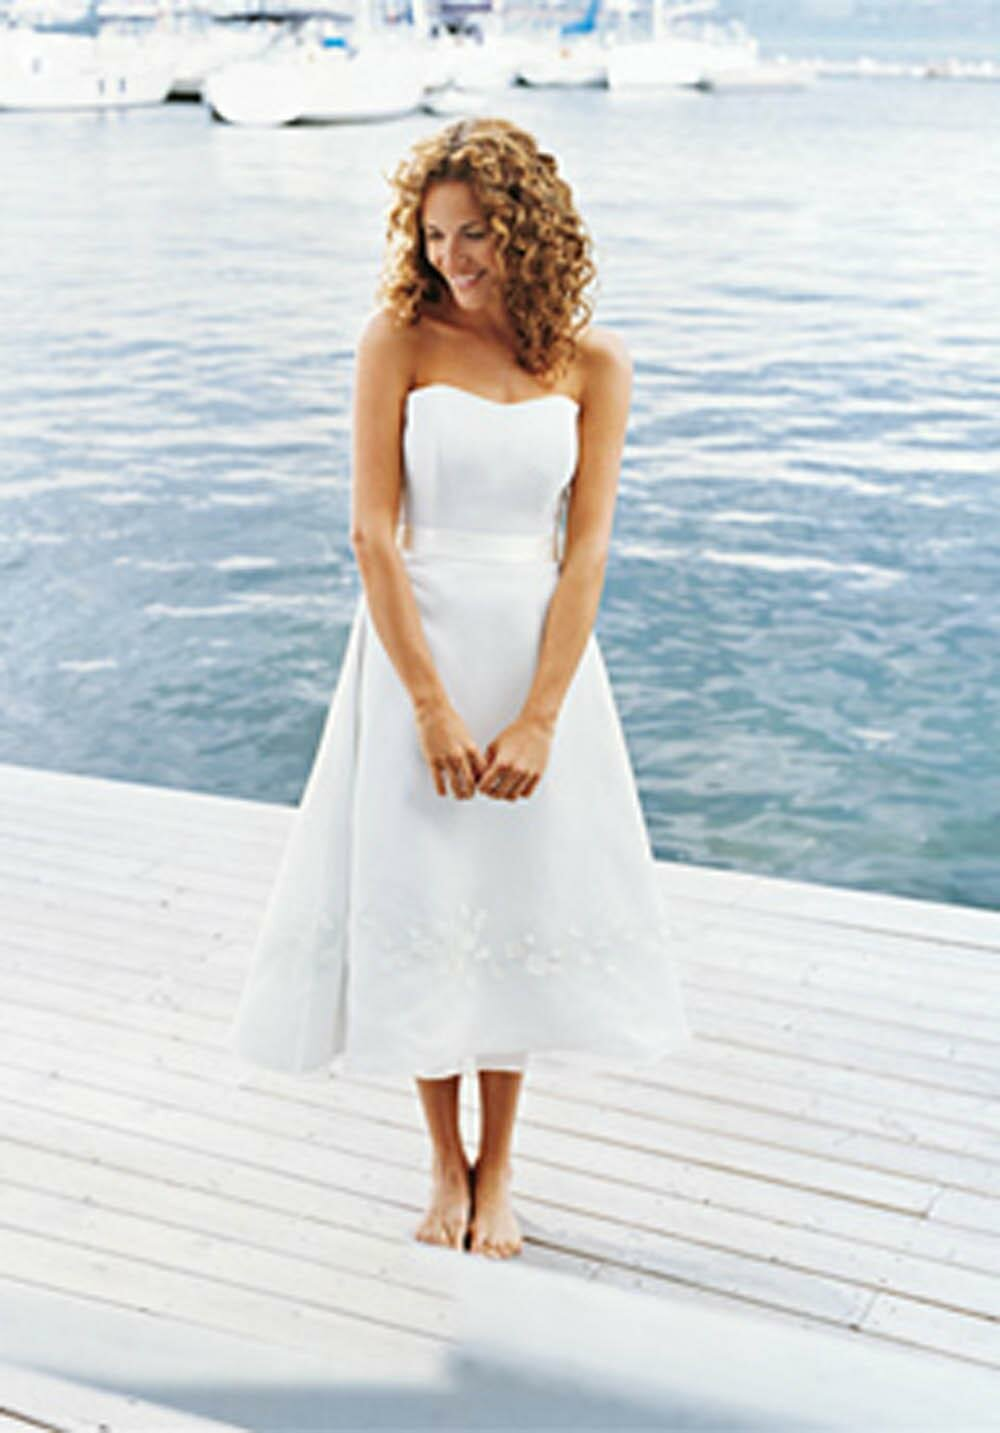 Casual beach wedding dresses Photo - 4